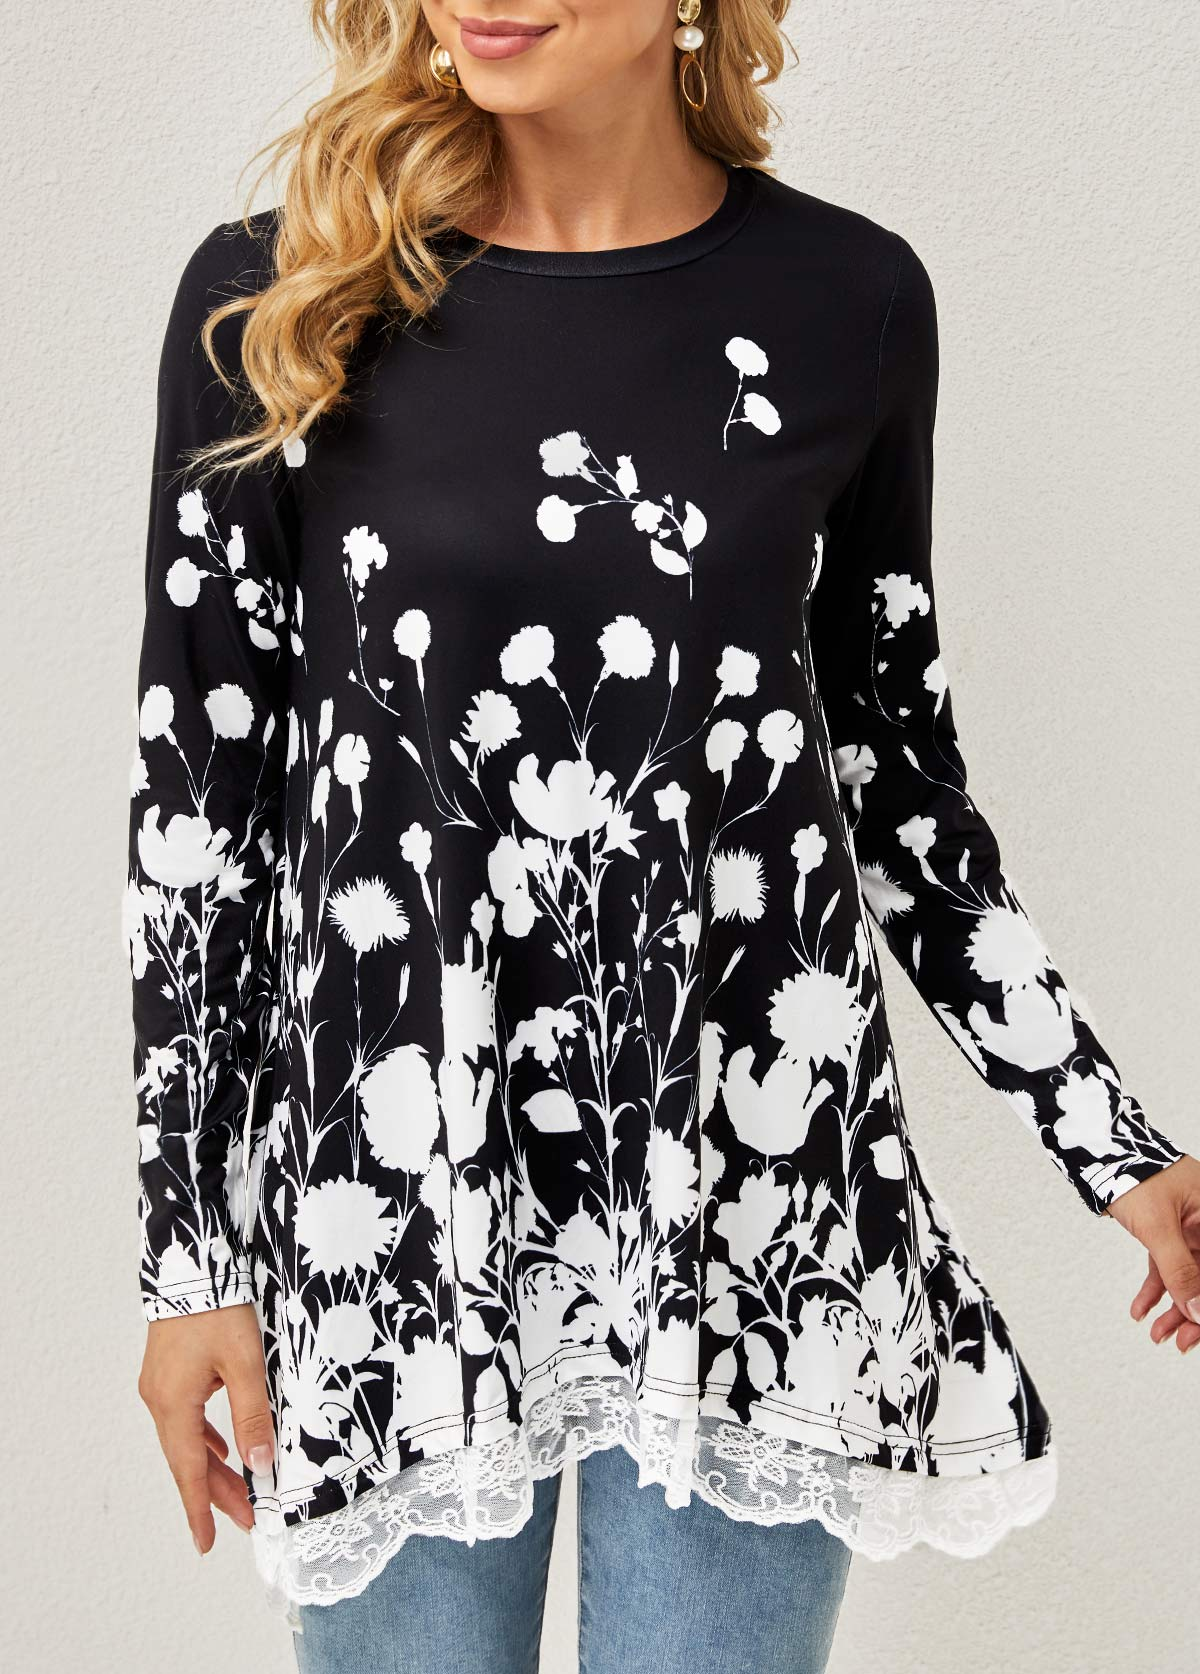 Floral Print Lace Stitching Round Neck T Shirt